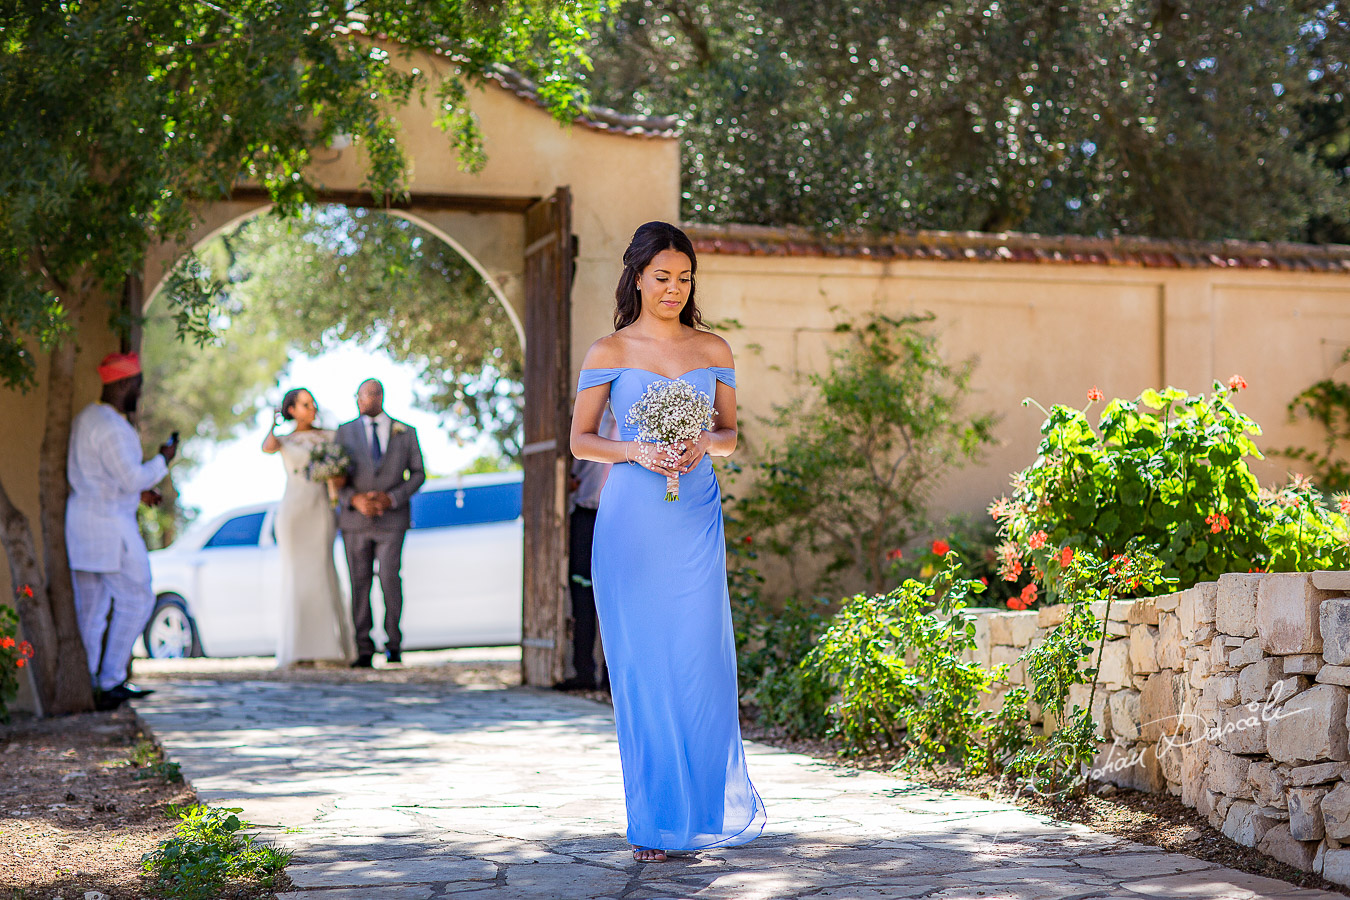 Moments with the maid of honor captured a wedding at Minthis Hills in Cyprus, by Cristian Dascalu.